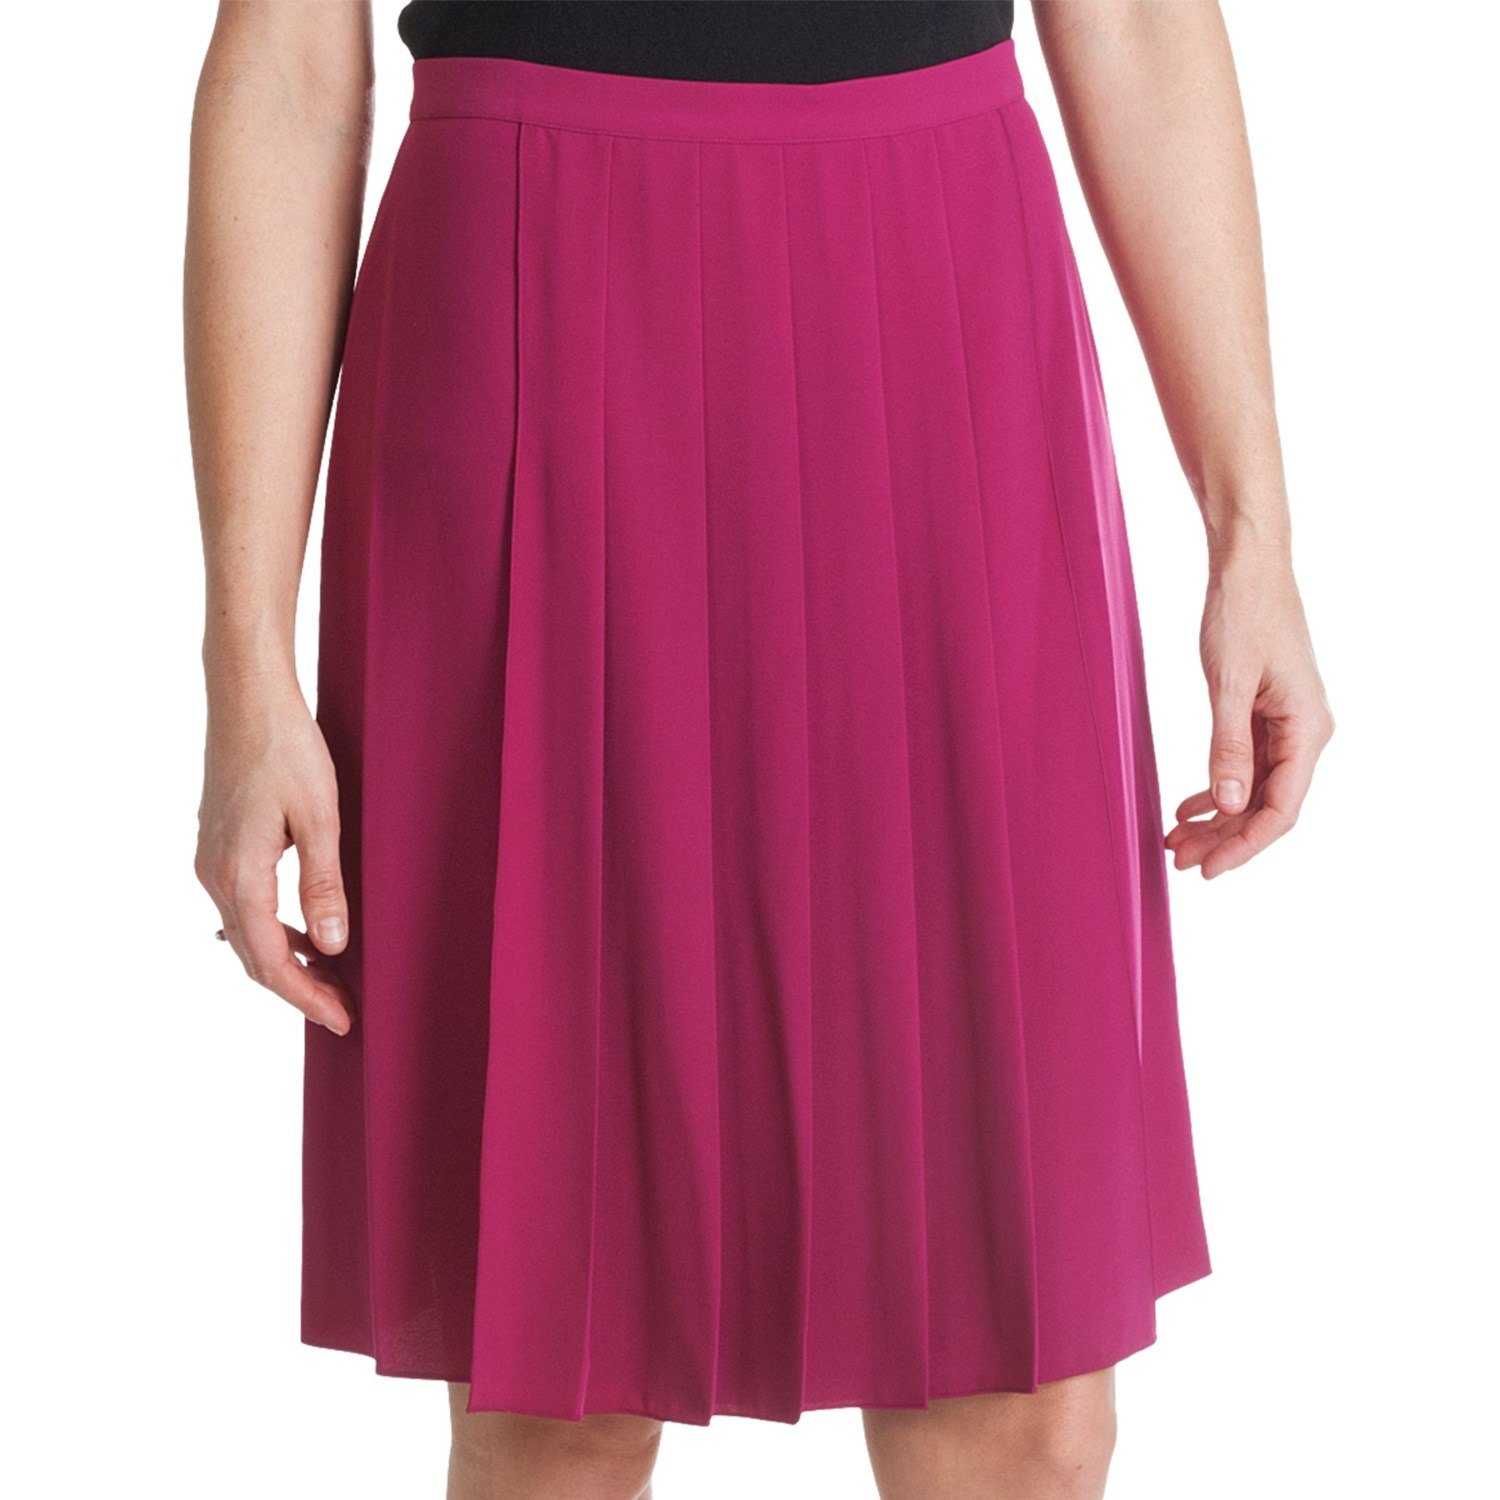 Perfect Pleated Skirt Gray Pleated Skirts Short Pleated Skirt Short Skirts